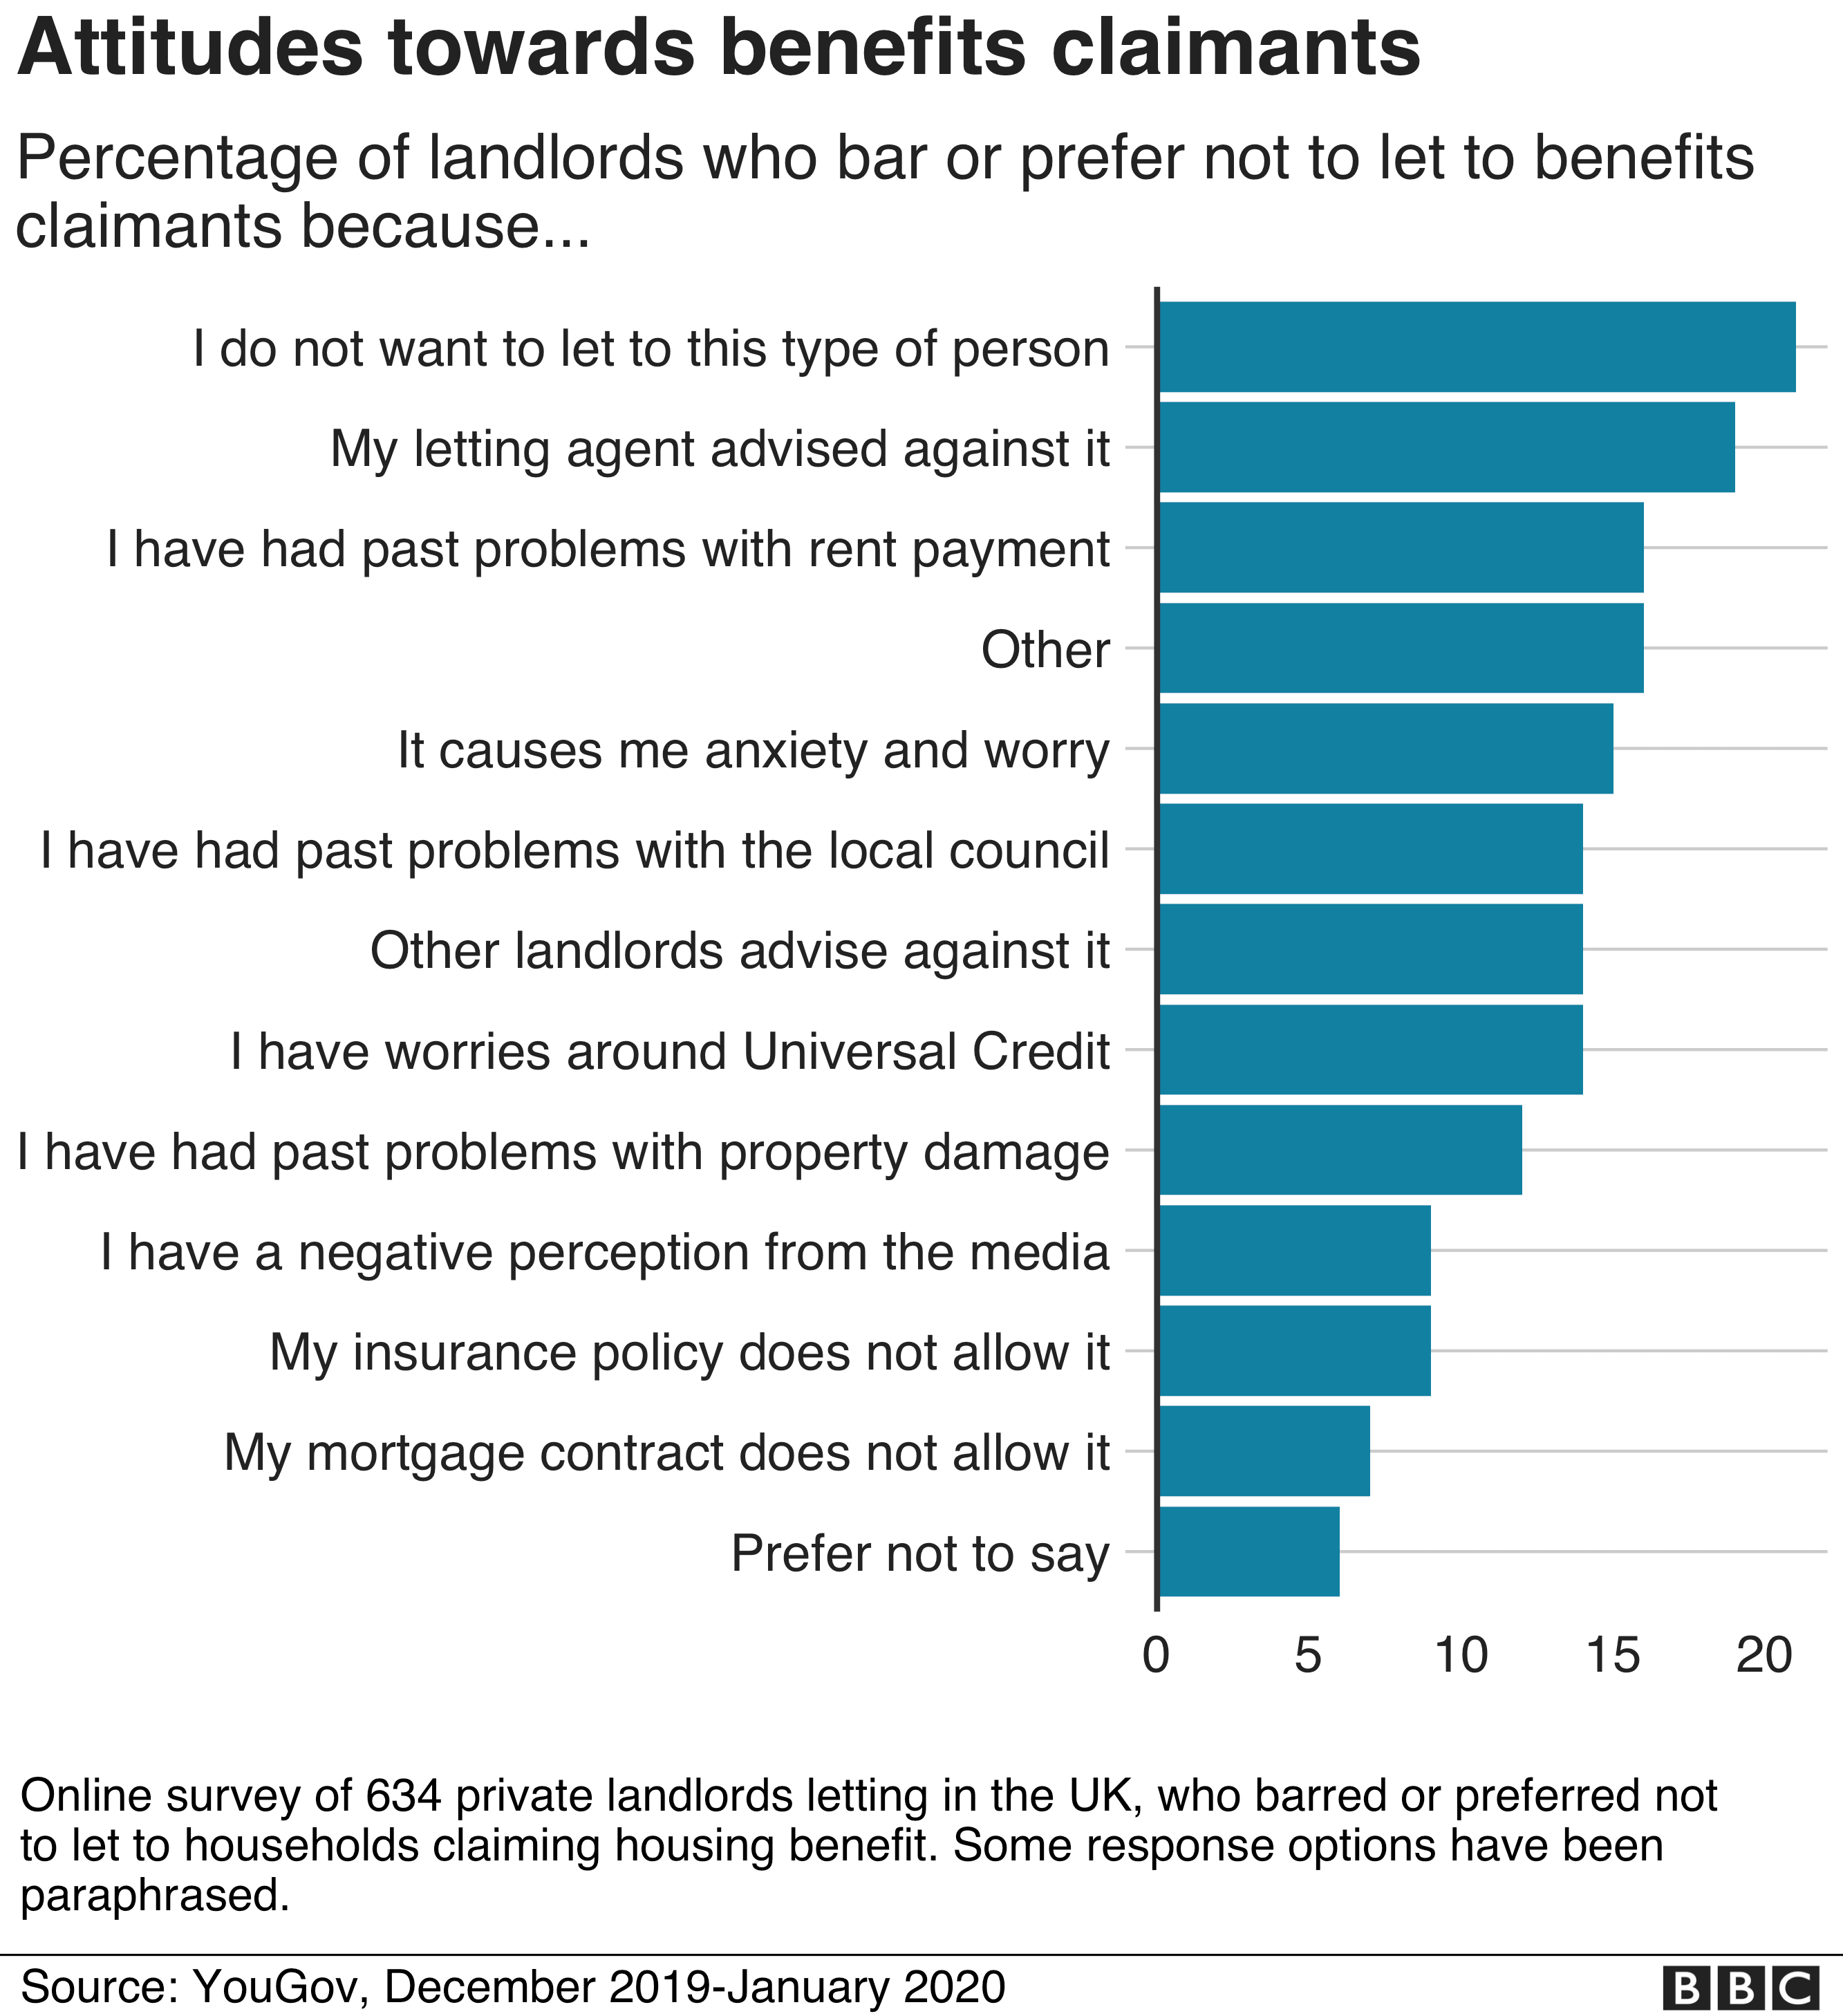 Bar chart showing the different reasons landlords do not rent to benefits claimants. The most common reason is 'I do not want to let to this type of person'